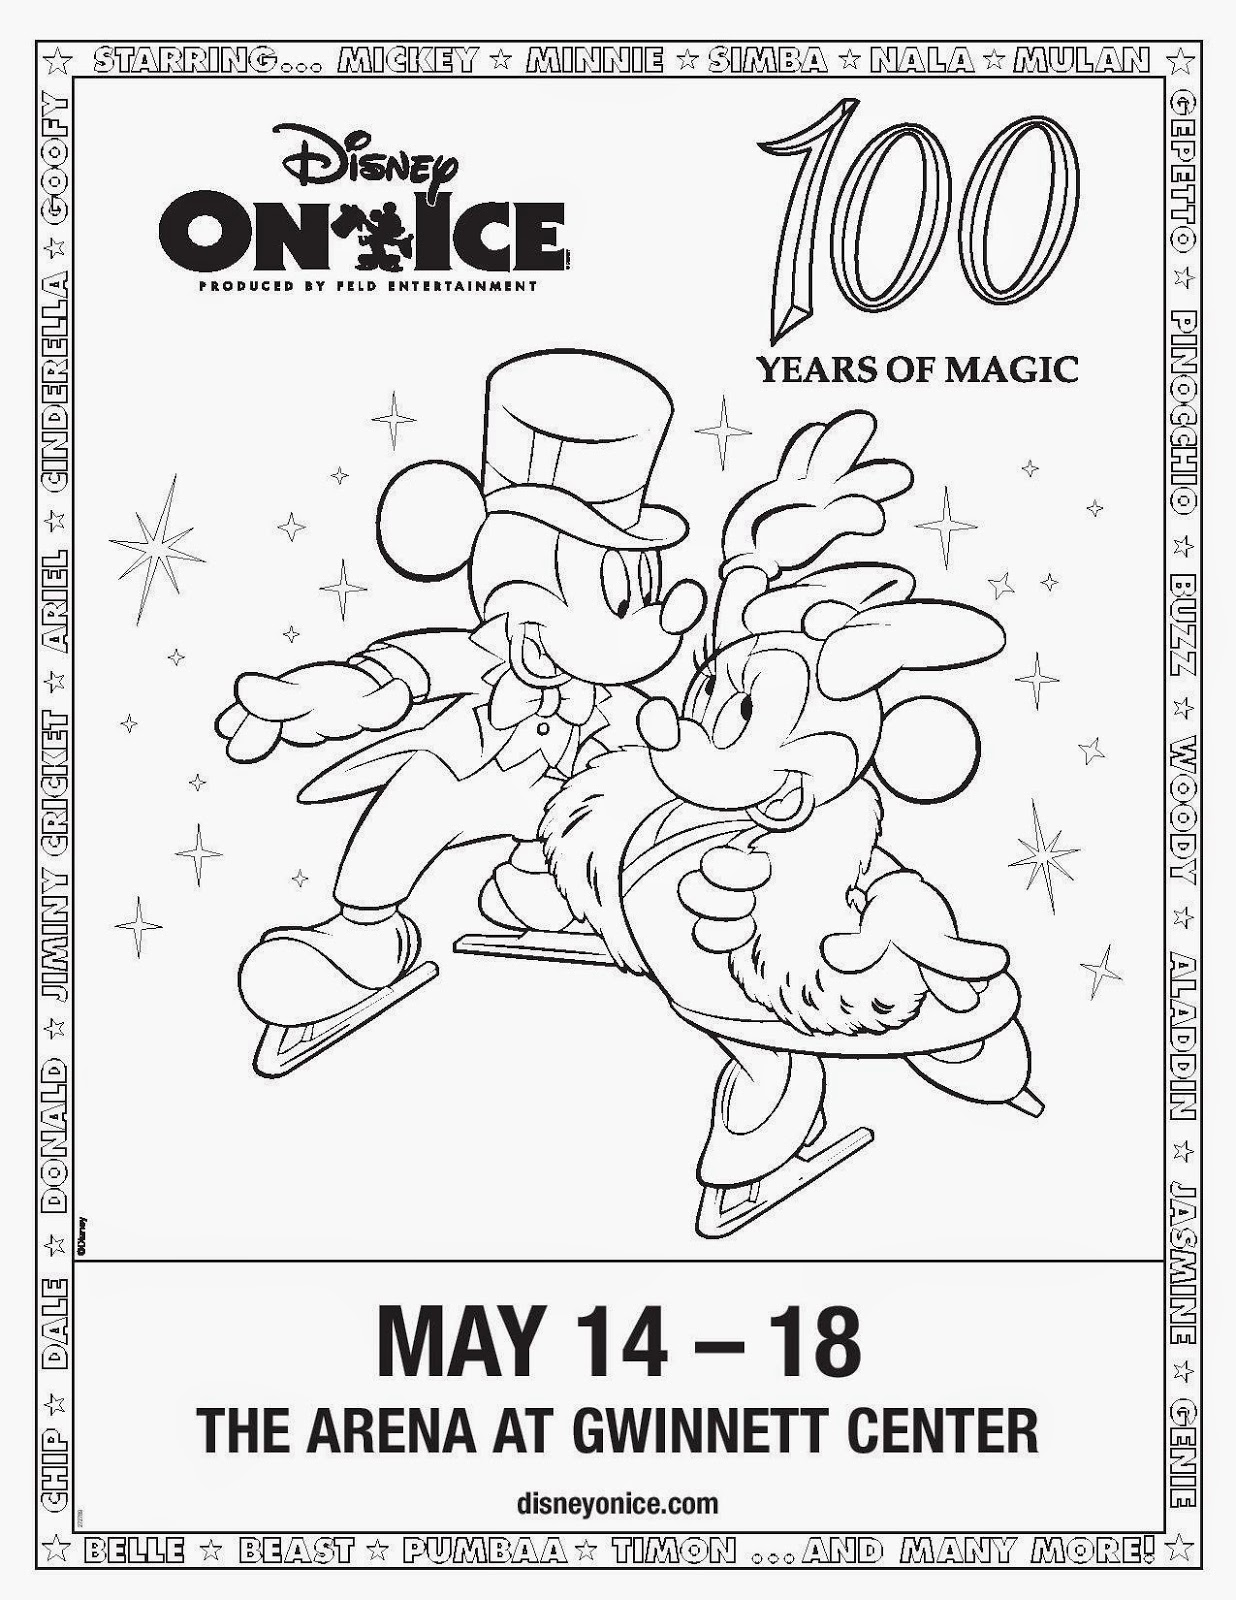 Disney On Ice At The Arena Gwinnett Center May 14th 18th And Giveaway ATLDOI